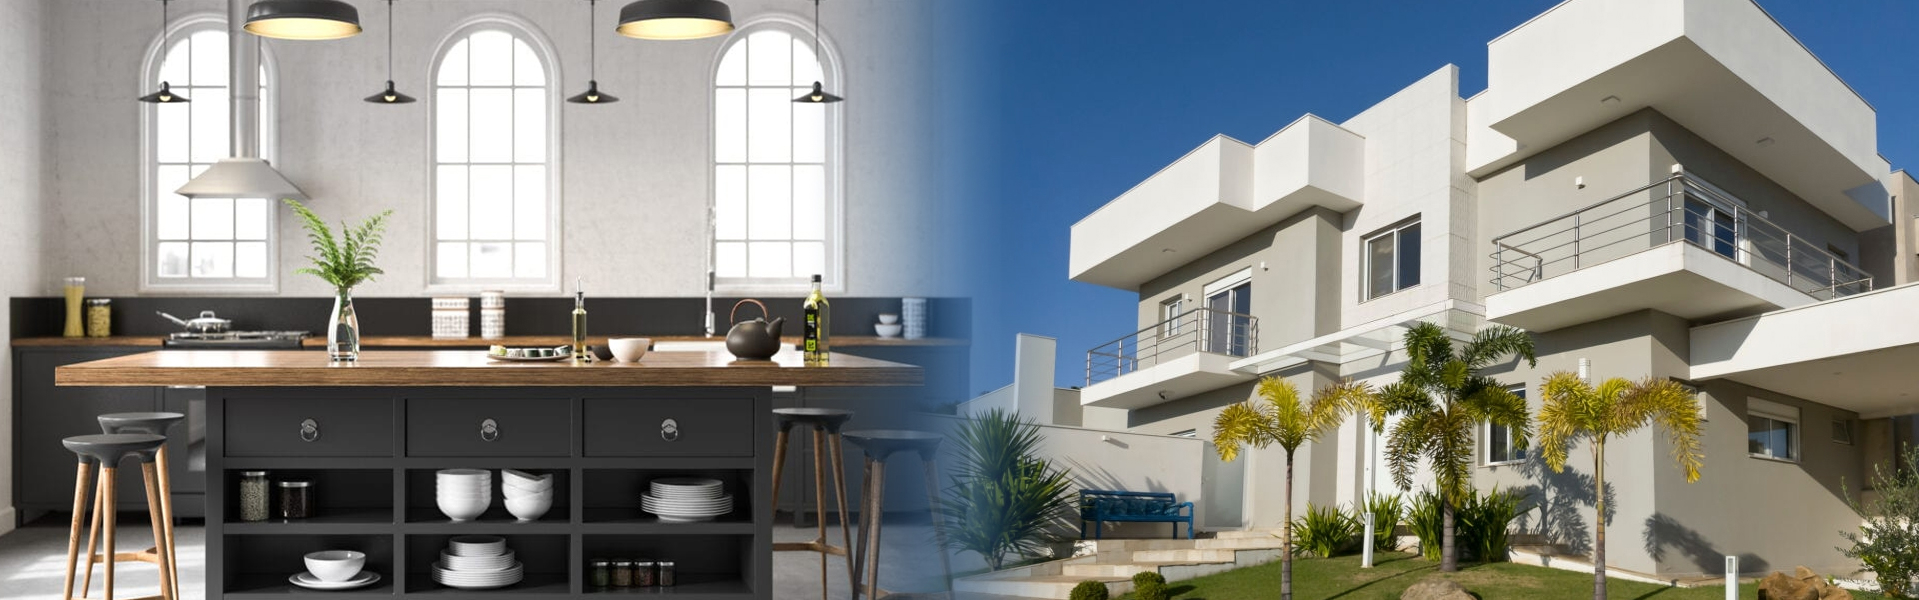 3dexperience for the home lifestyle industry